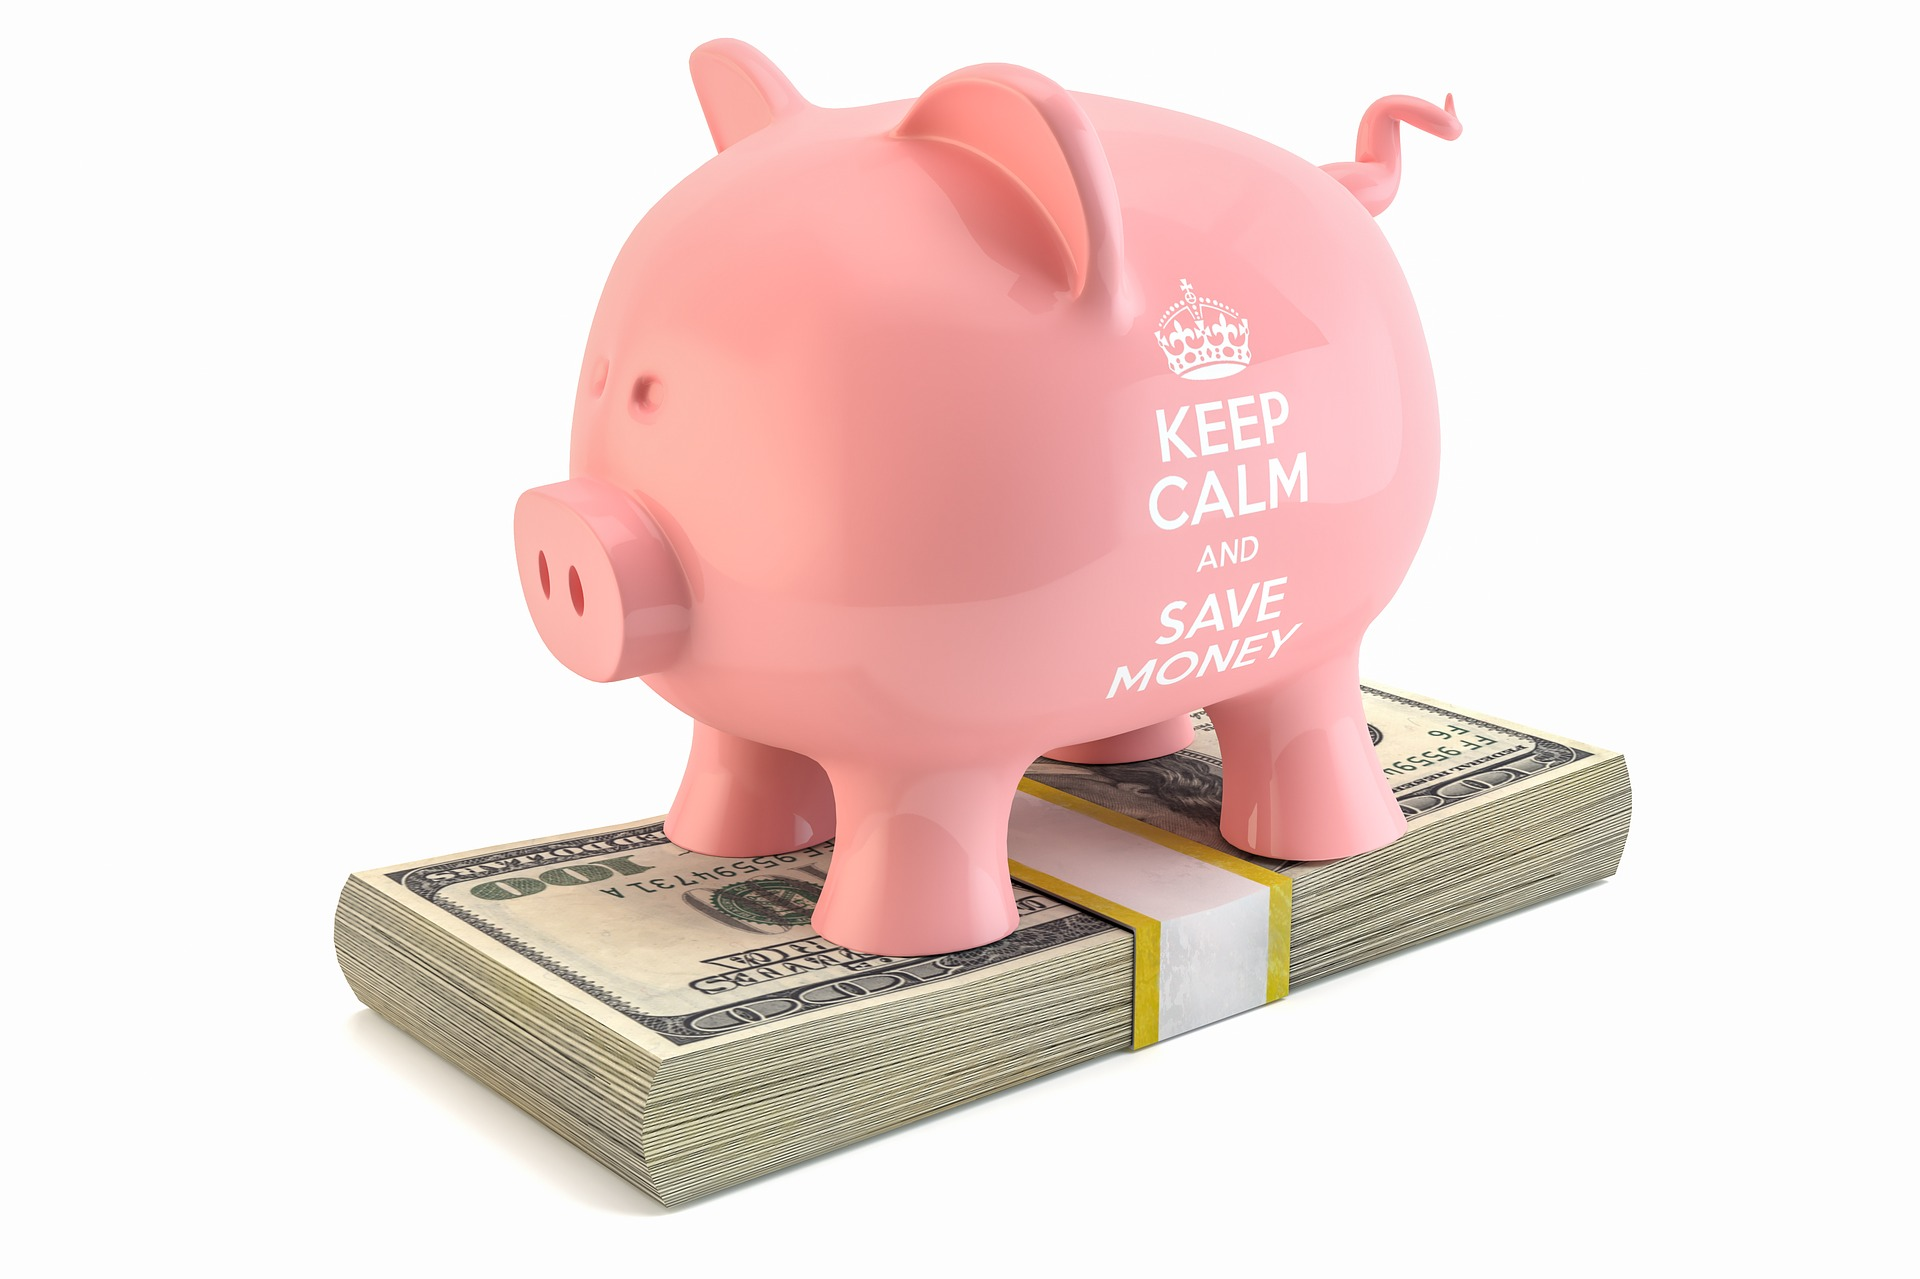 new year savings goal